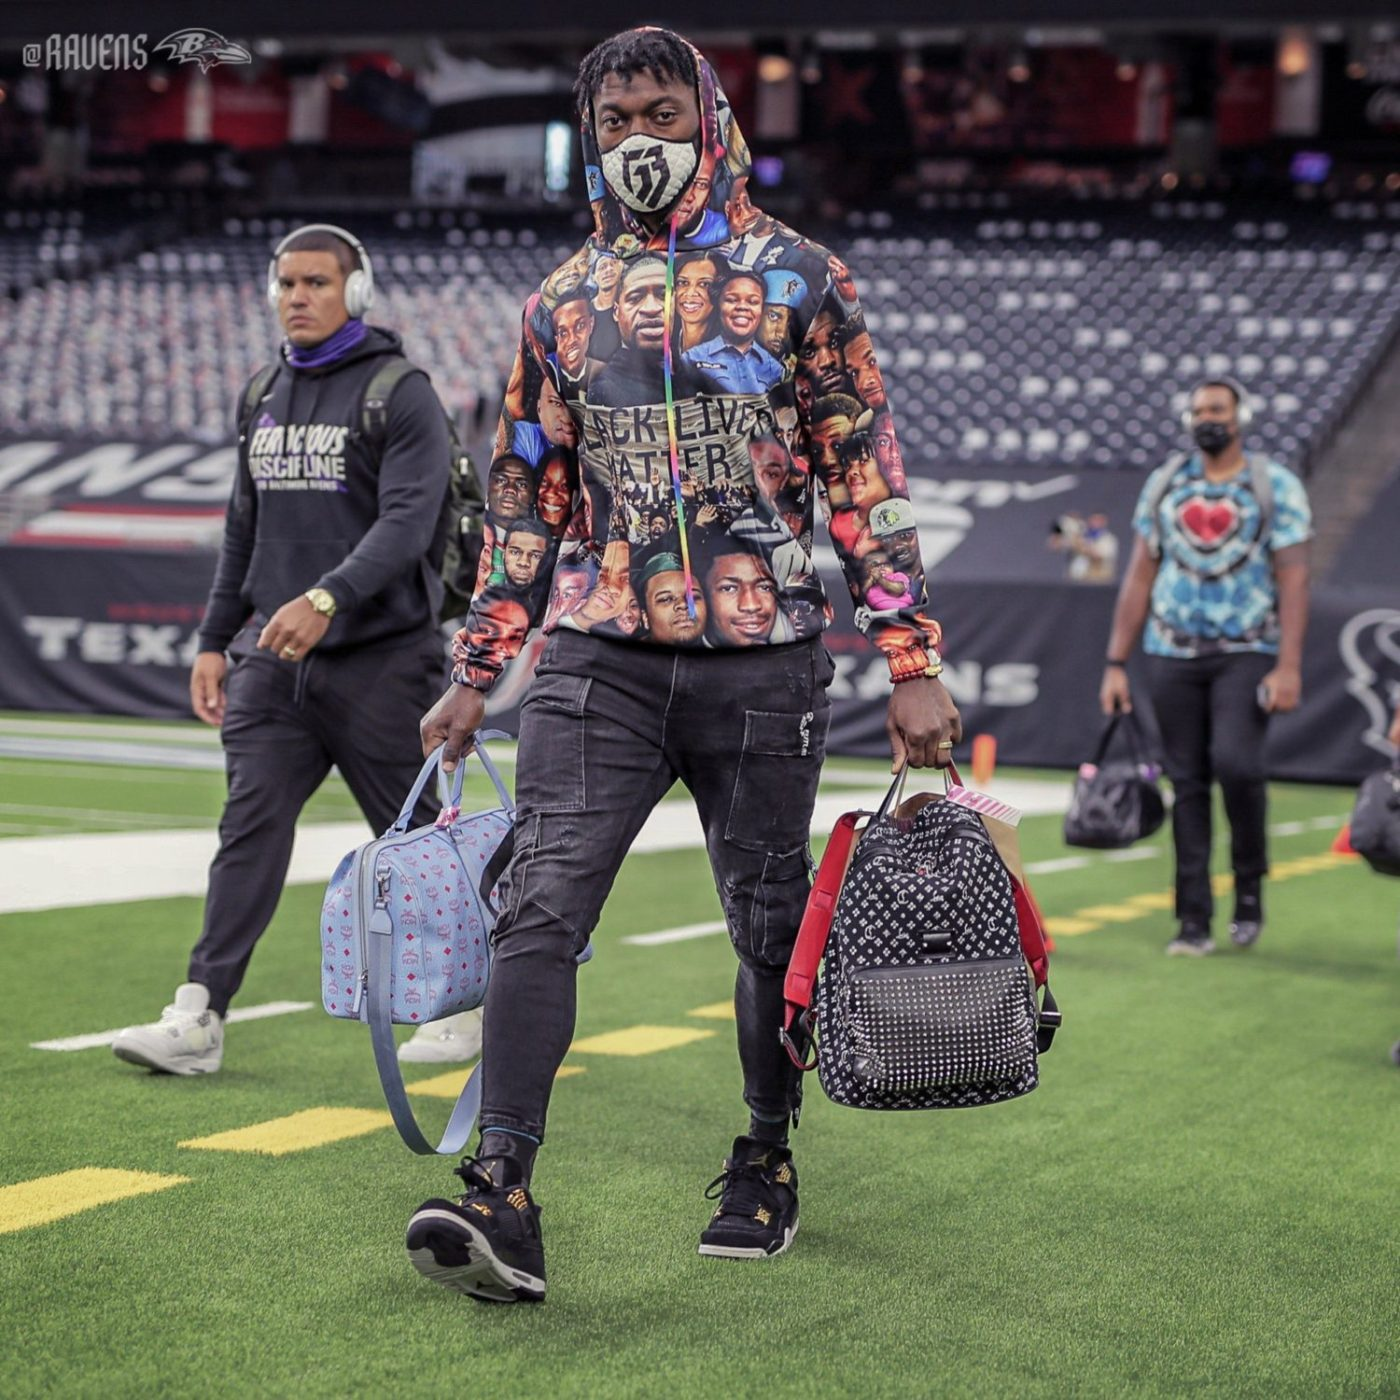 Baltimore-Ravens-quarterback-Robert-Griffin-III-arrives-in-sweatshirt-Black-police-shooting-victims-092020-by-Ravens-1400x1400, Disentangling US team sports and US militarism, National News & Views